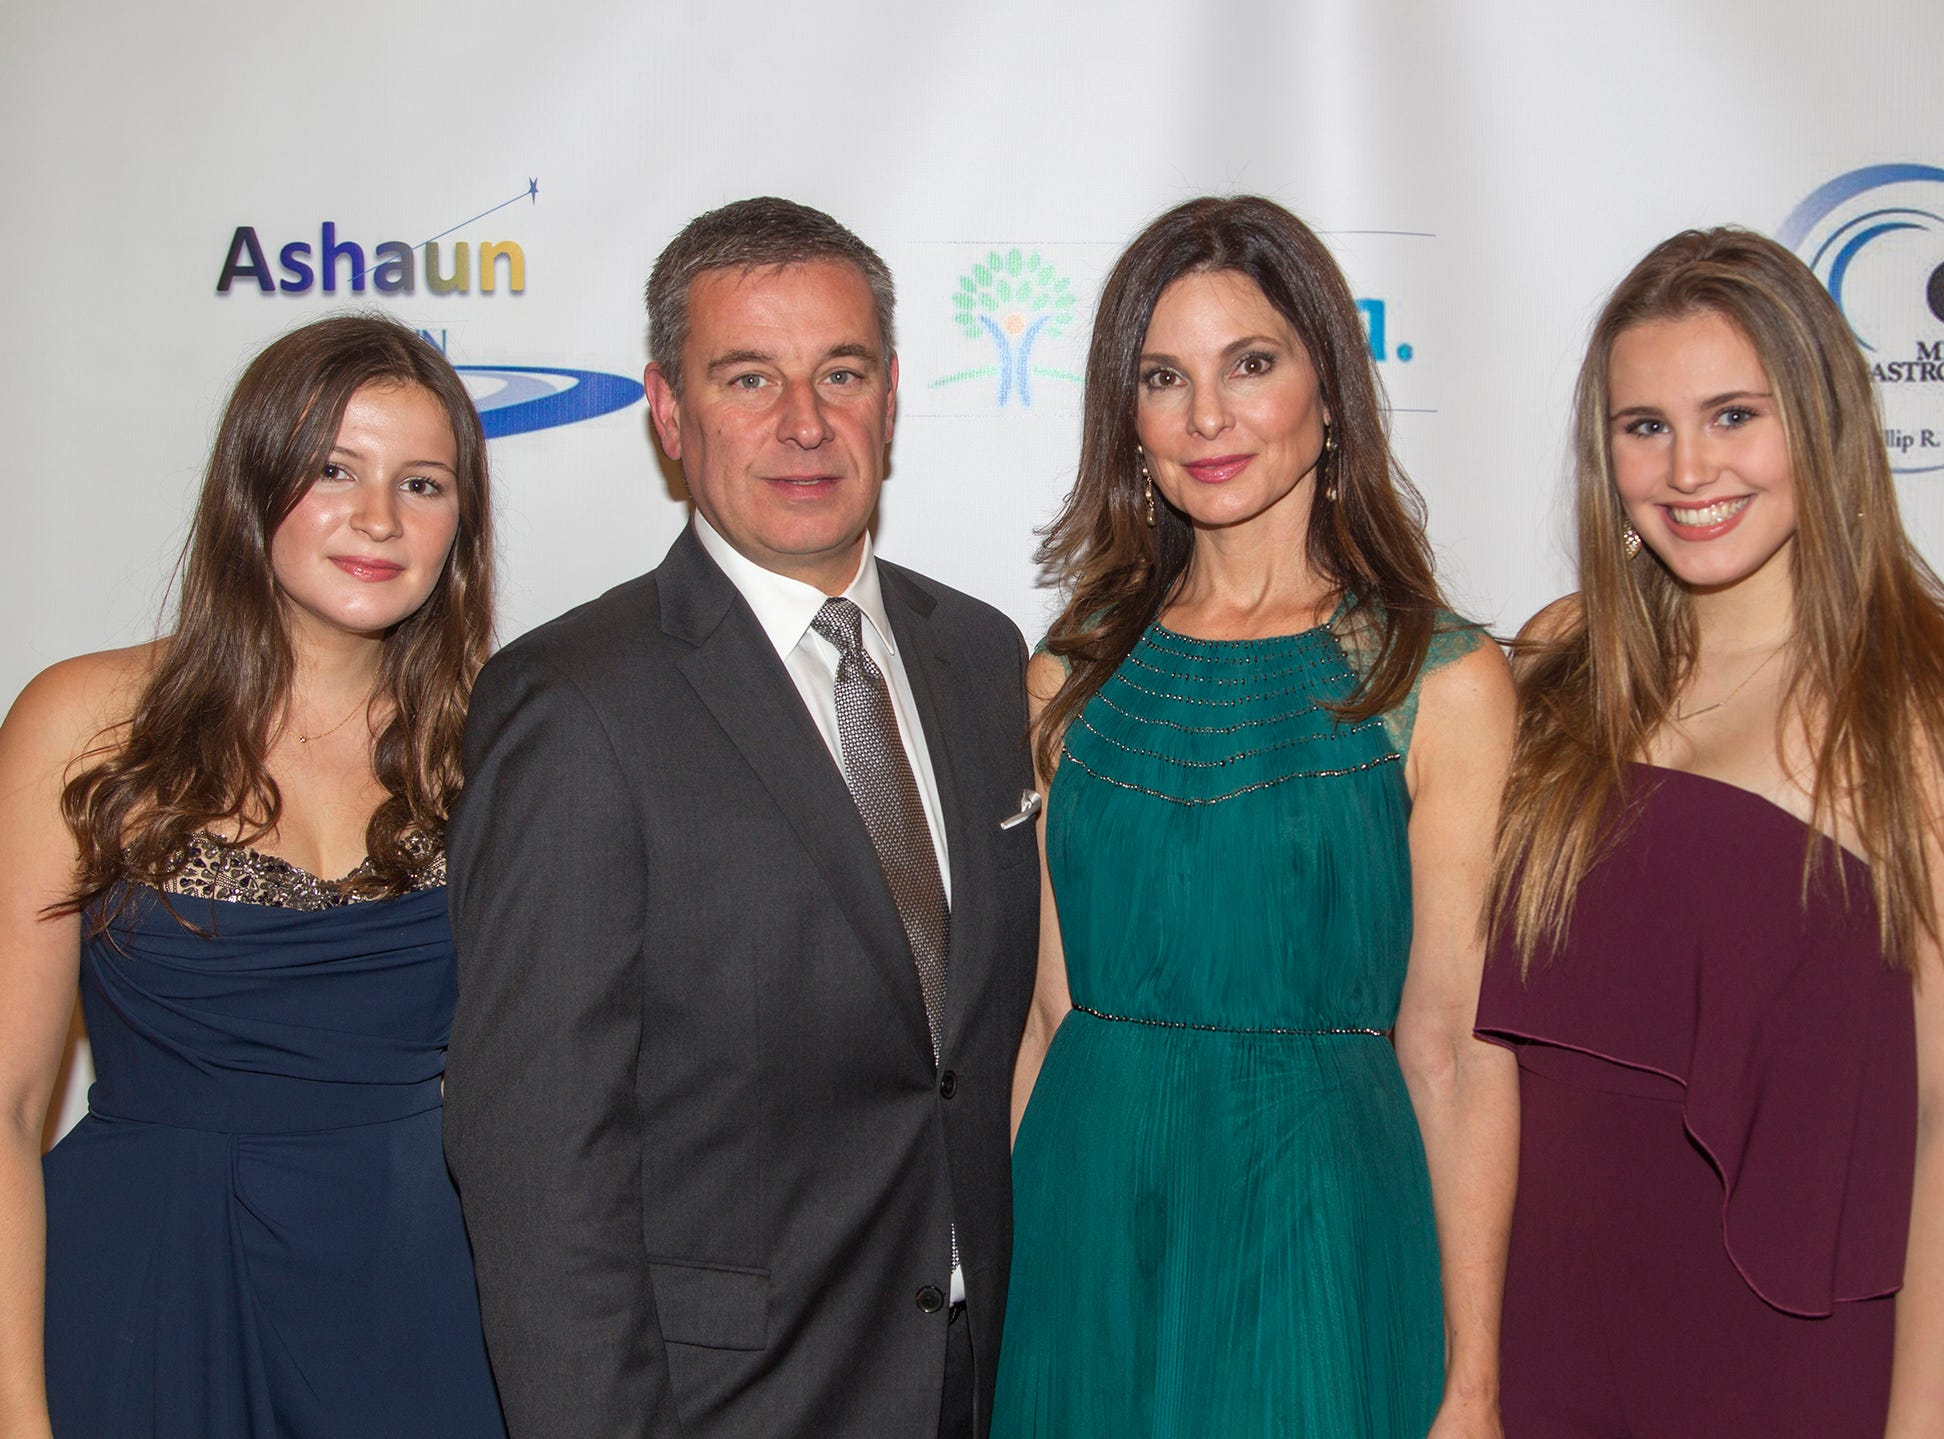 Catherine, Dr. Dante, Christine, Lily Implicito.  Jessie Banks Foundation holds 16th annual Scholarship Awards Gala in Teaneck. 11/09/2018